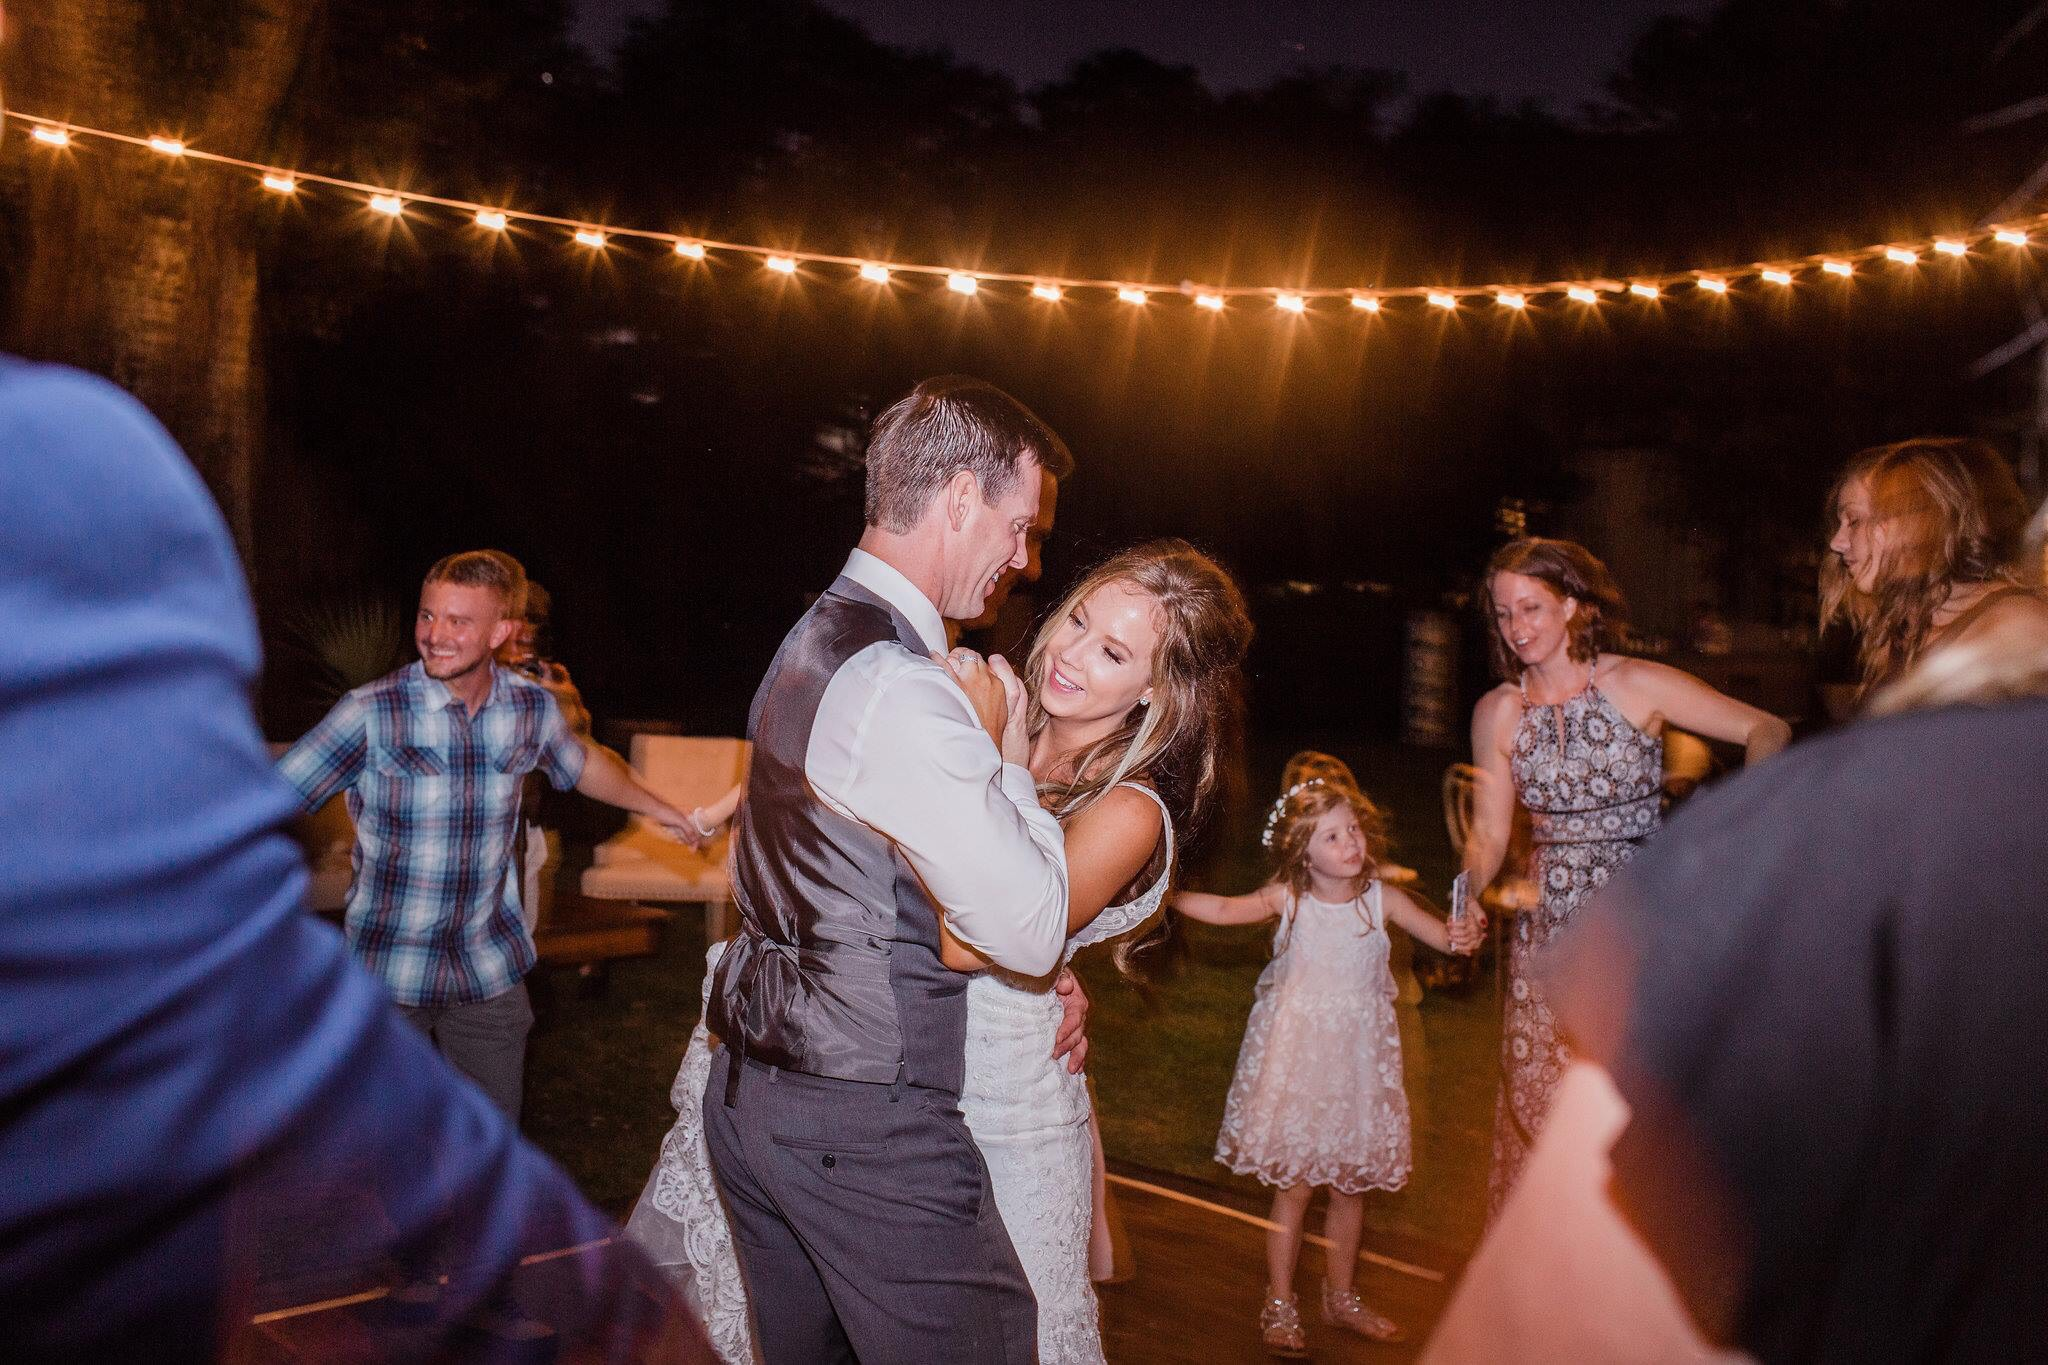 lowcountry-kitchen-catering-beaufort-sc-dave-and-erica-hein-wedding-dancing.jpg